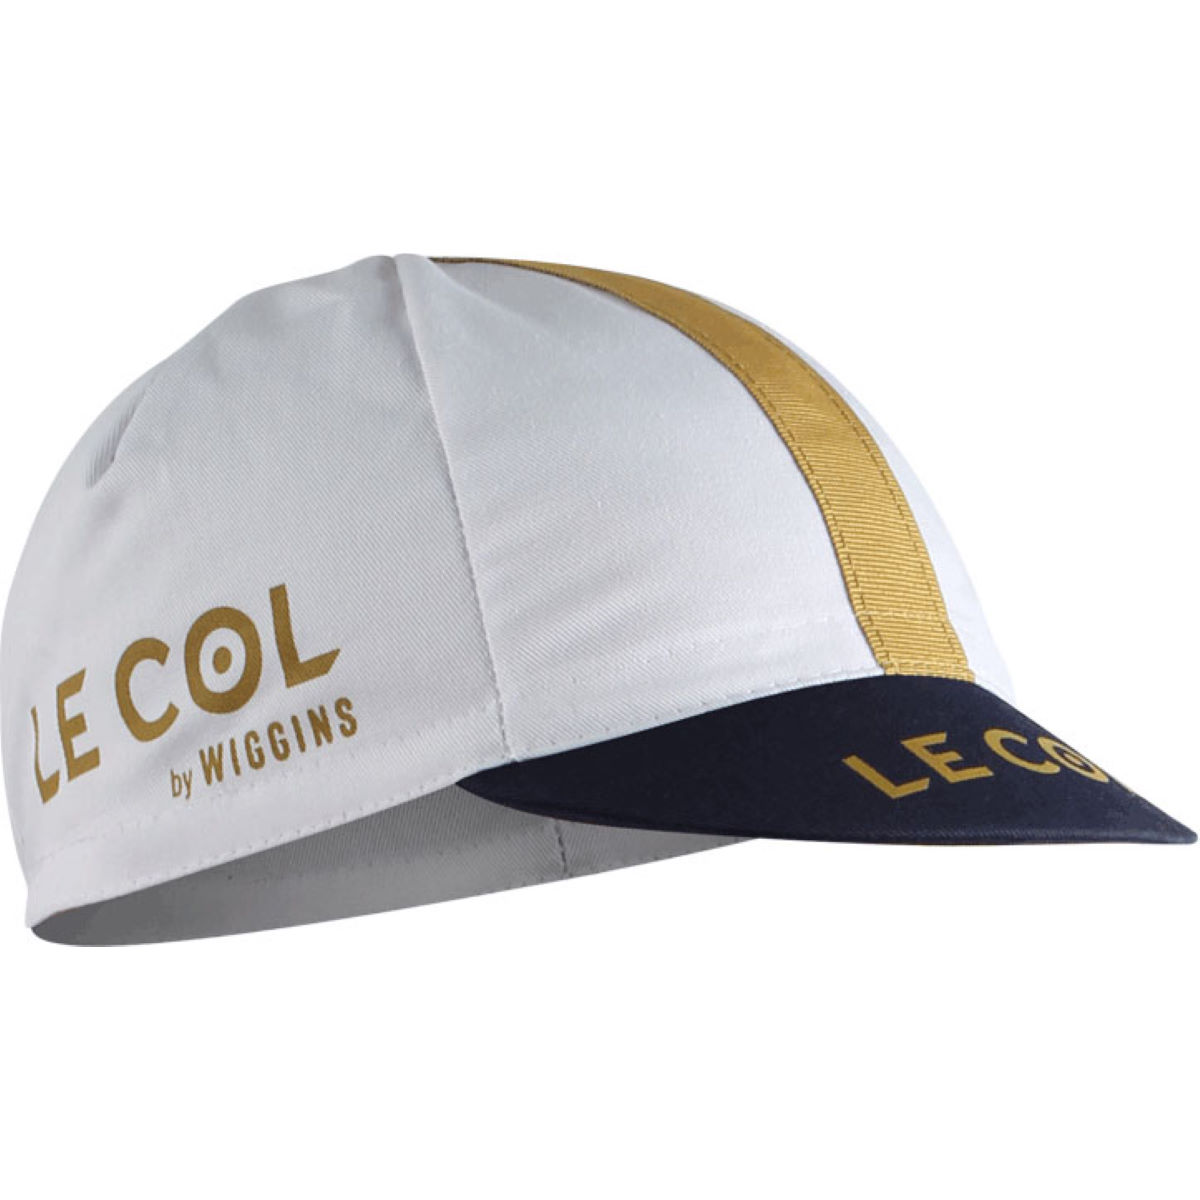 Le Col Le Col By Wiggins Pro Cycling Cap   Caps